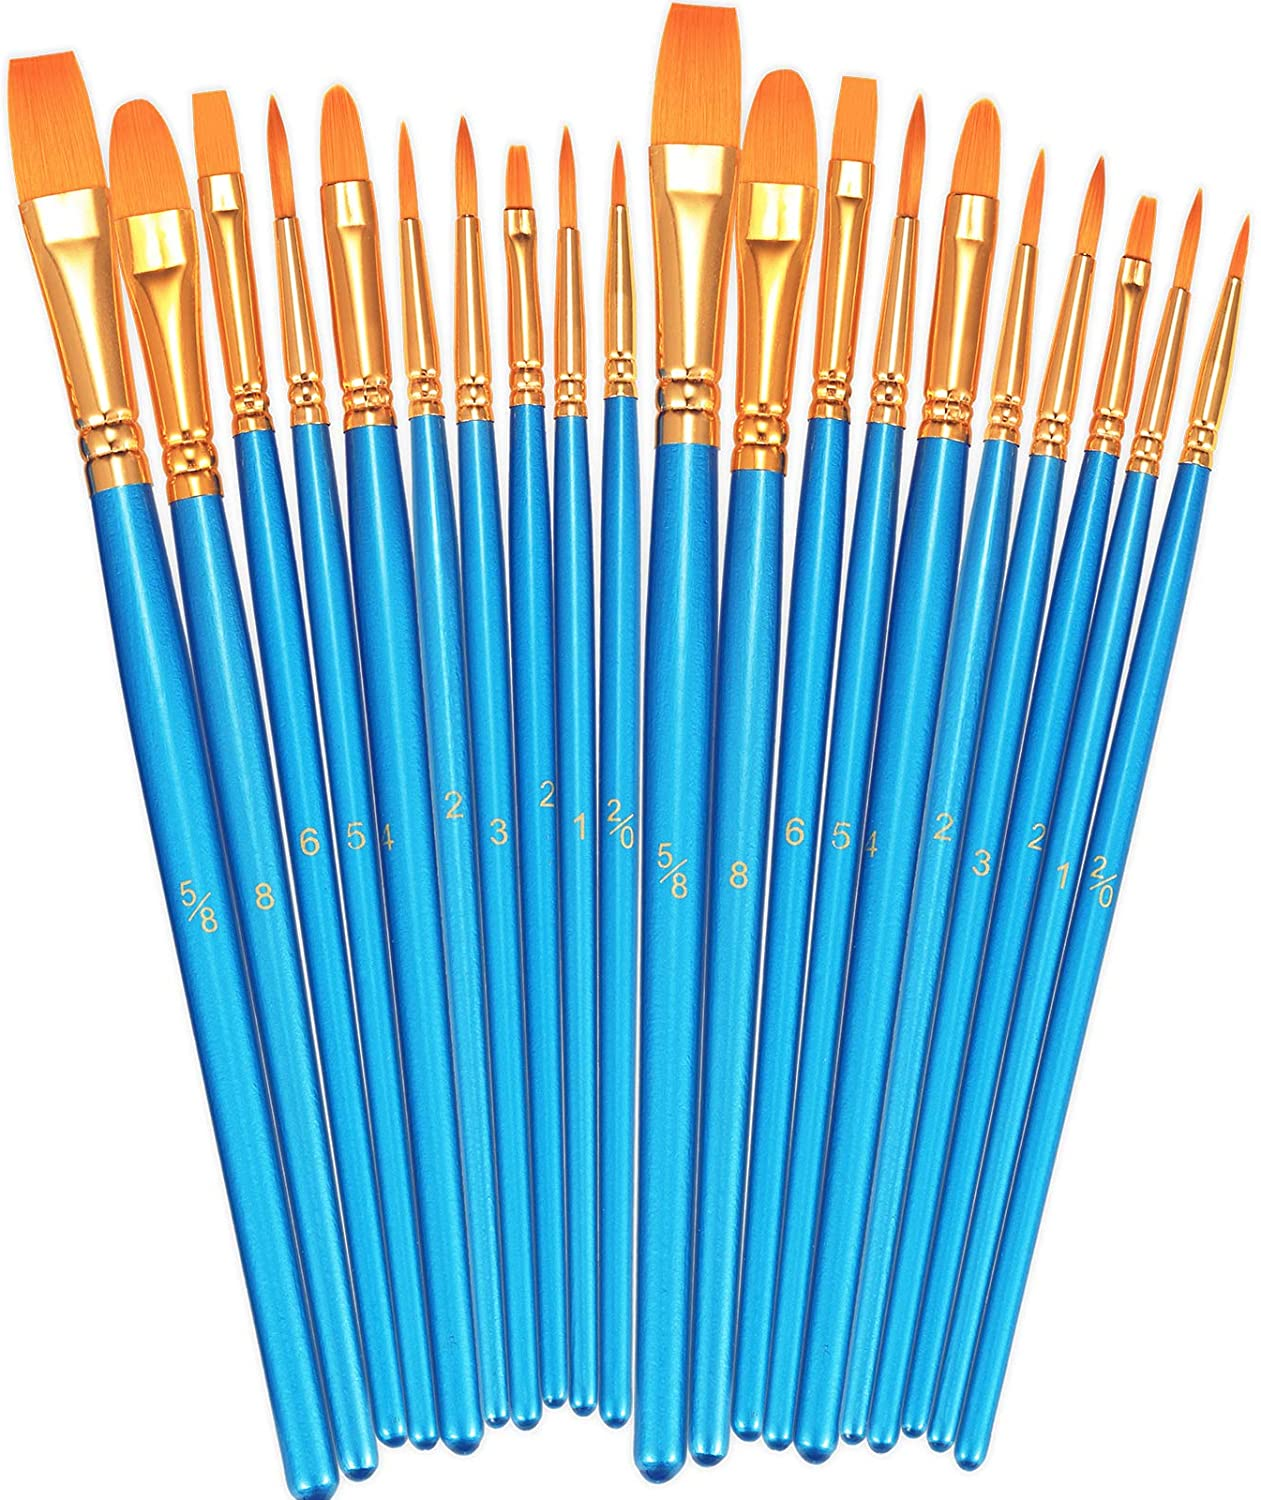 Set of 3 Paint Brushes Paint Brush Set with No Bristle Loss Pack of Paint Brushes for DIY Wood Gloss Wall Furniture Indoor /& Outdoor Painting Free Decorating Guide